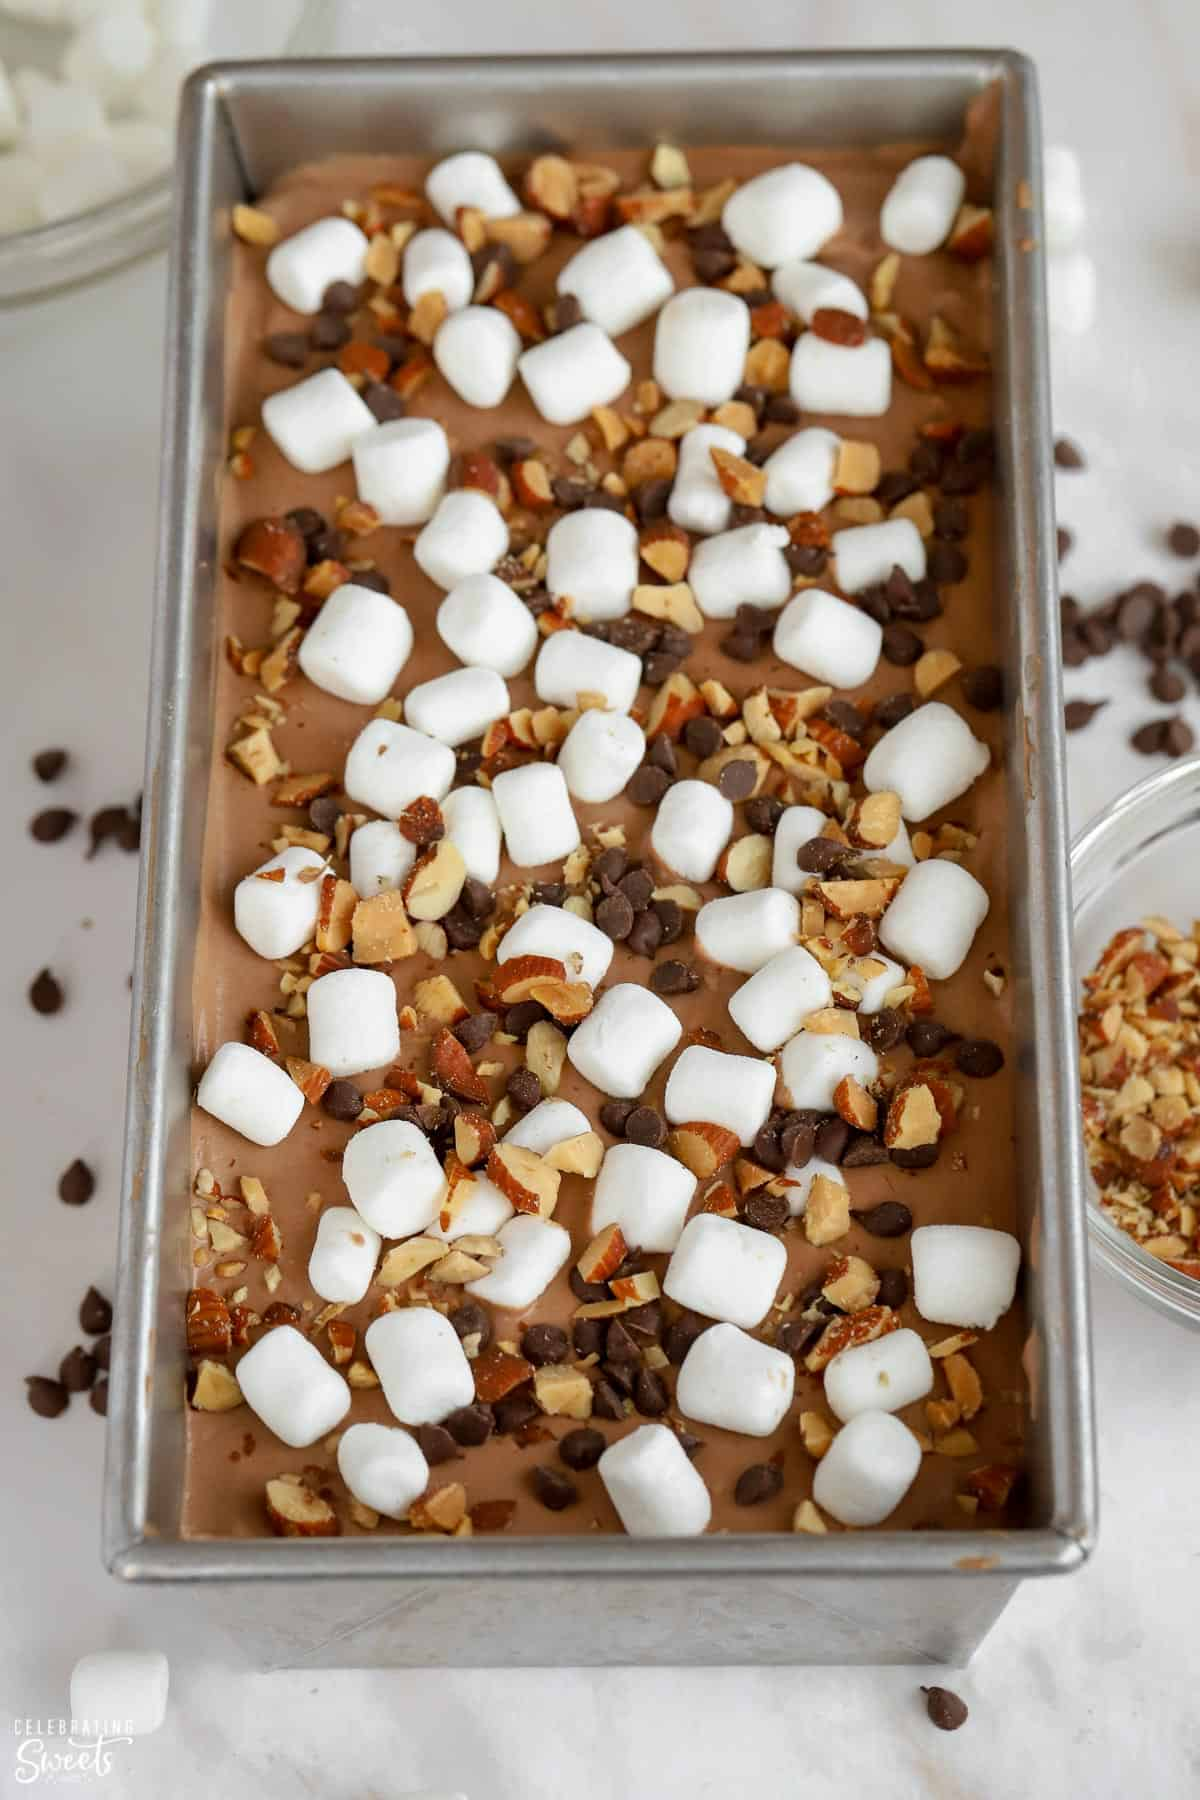 Rocky road ice cream in a loaf pan.